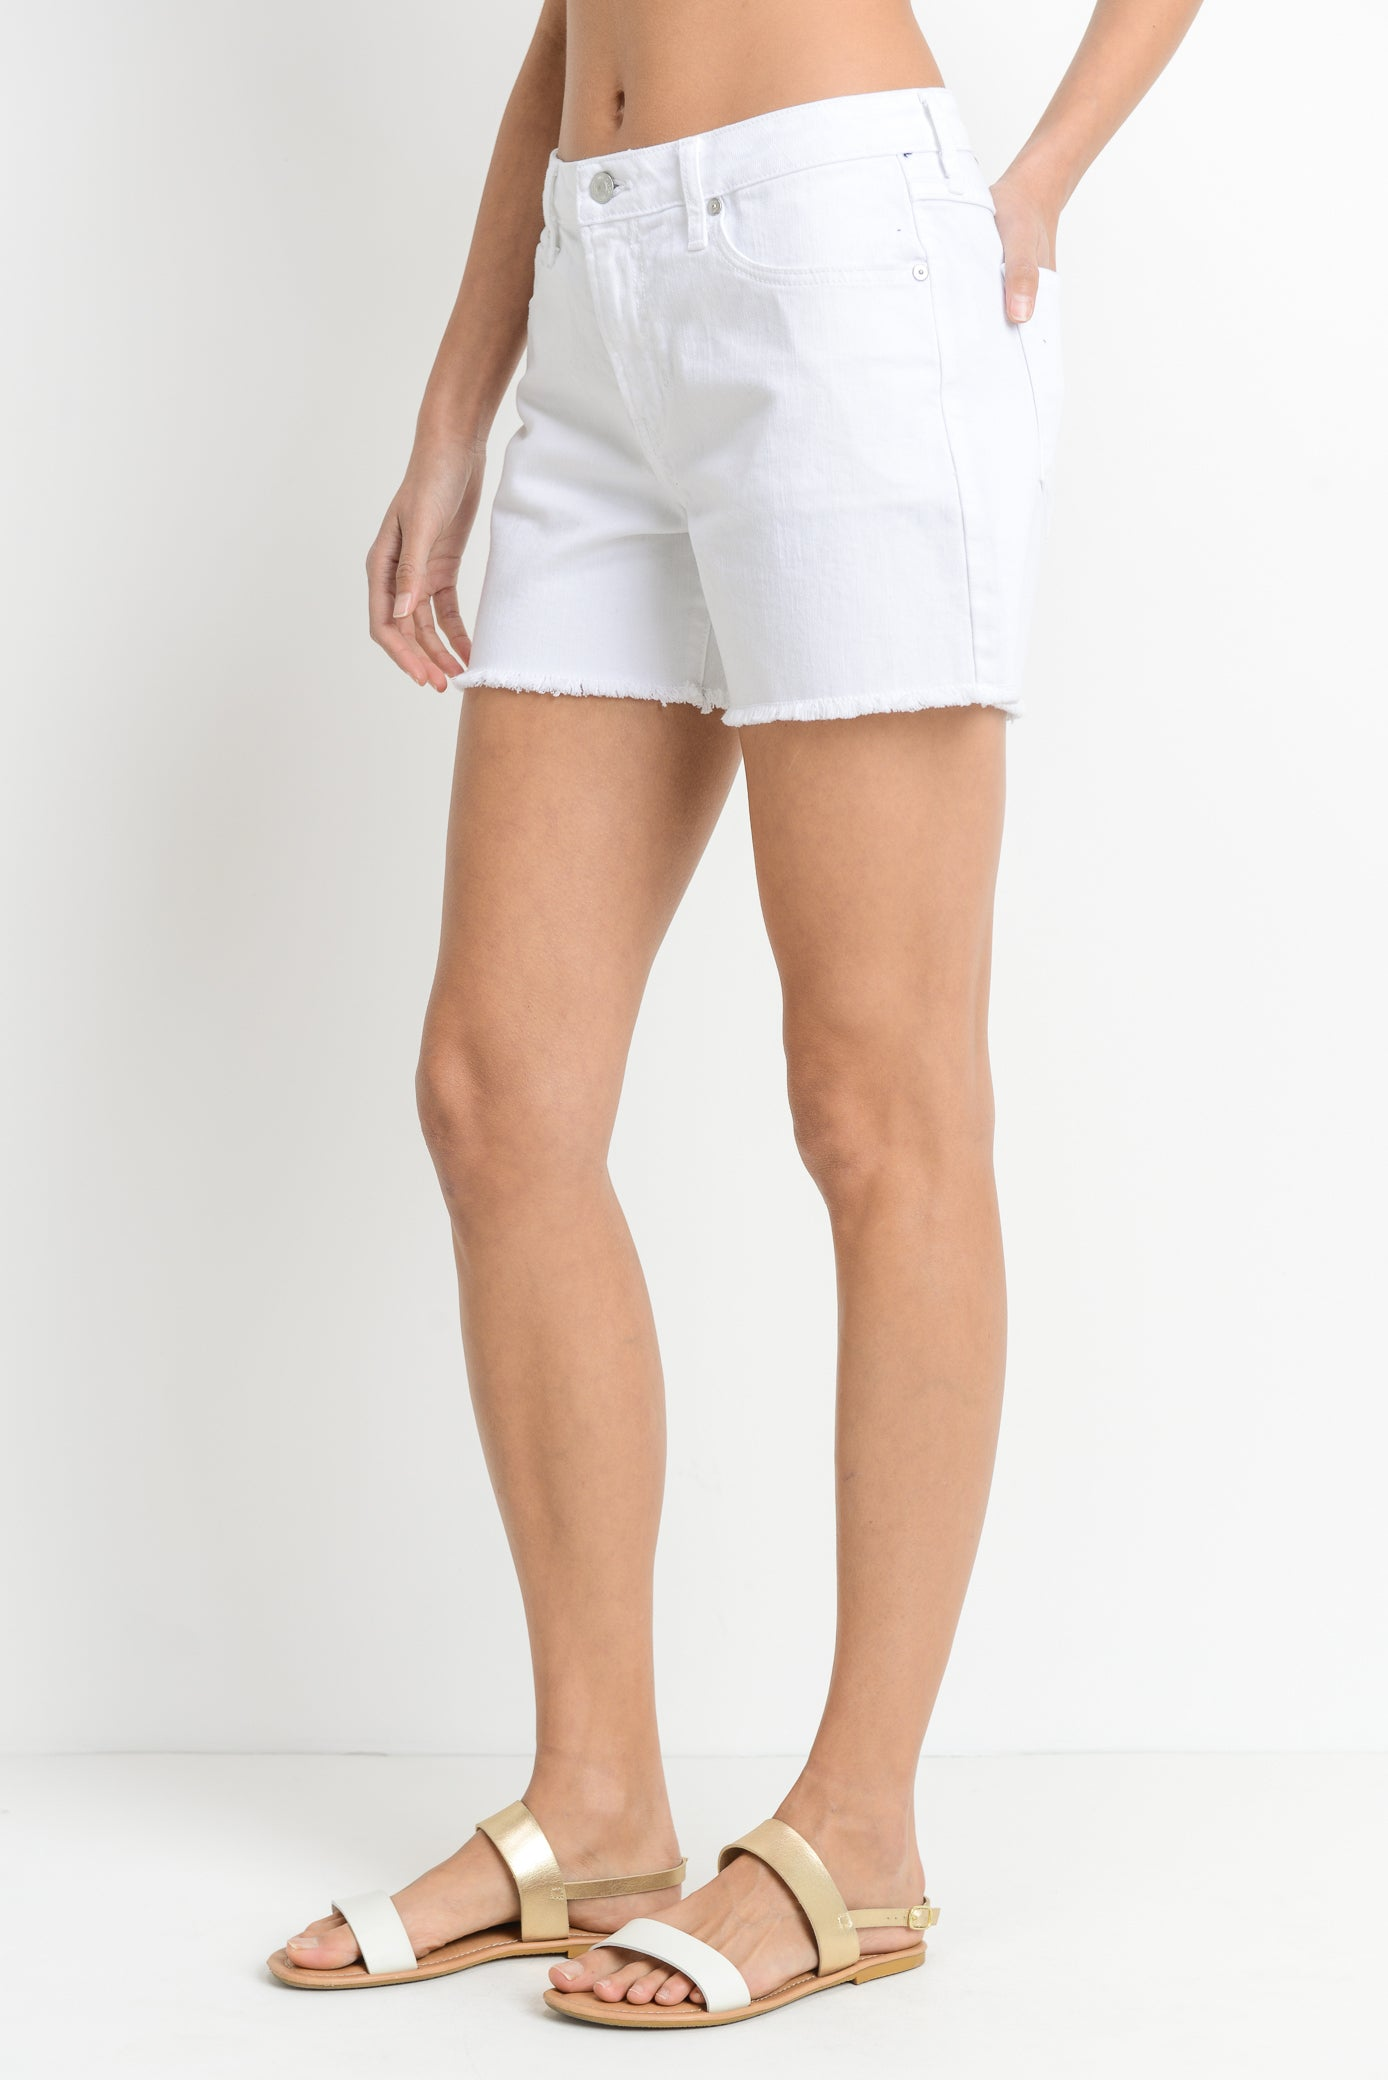 Just Black WhiteHigh Rise Frey Hem Shorts BH140J-A